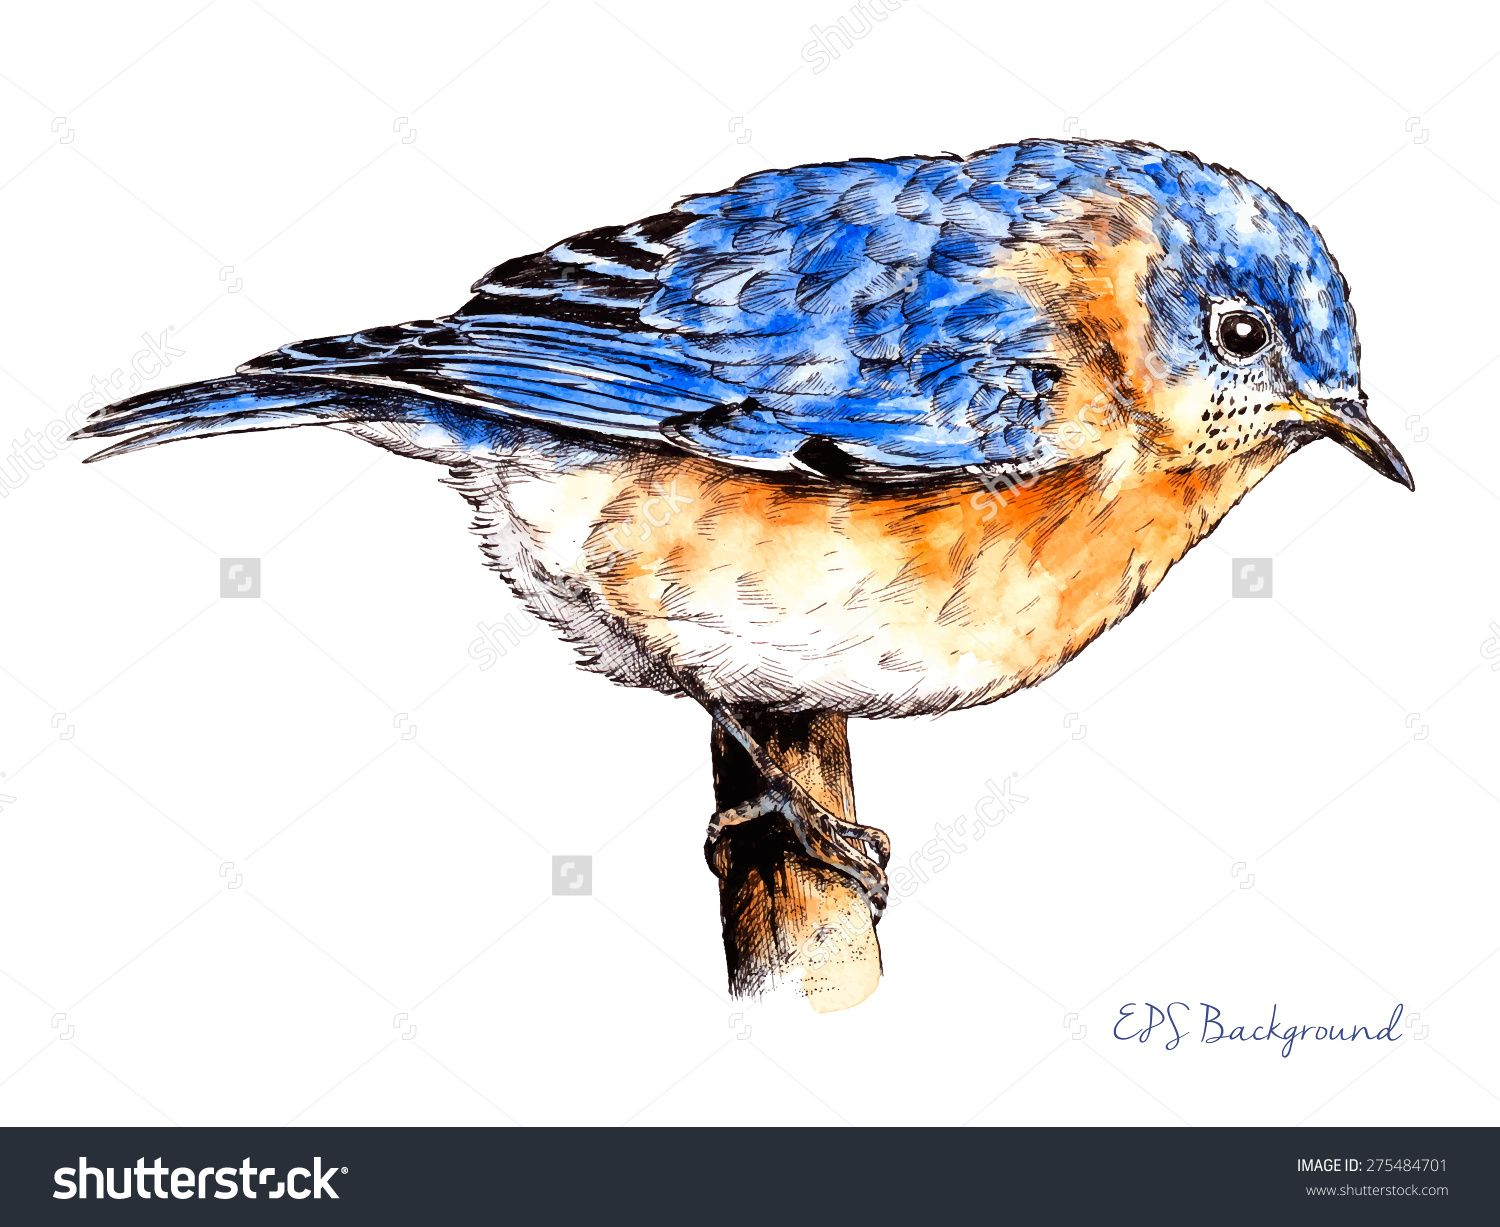 Realistic Bird Sketch Hand Drawn With Pen Ink And